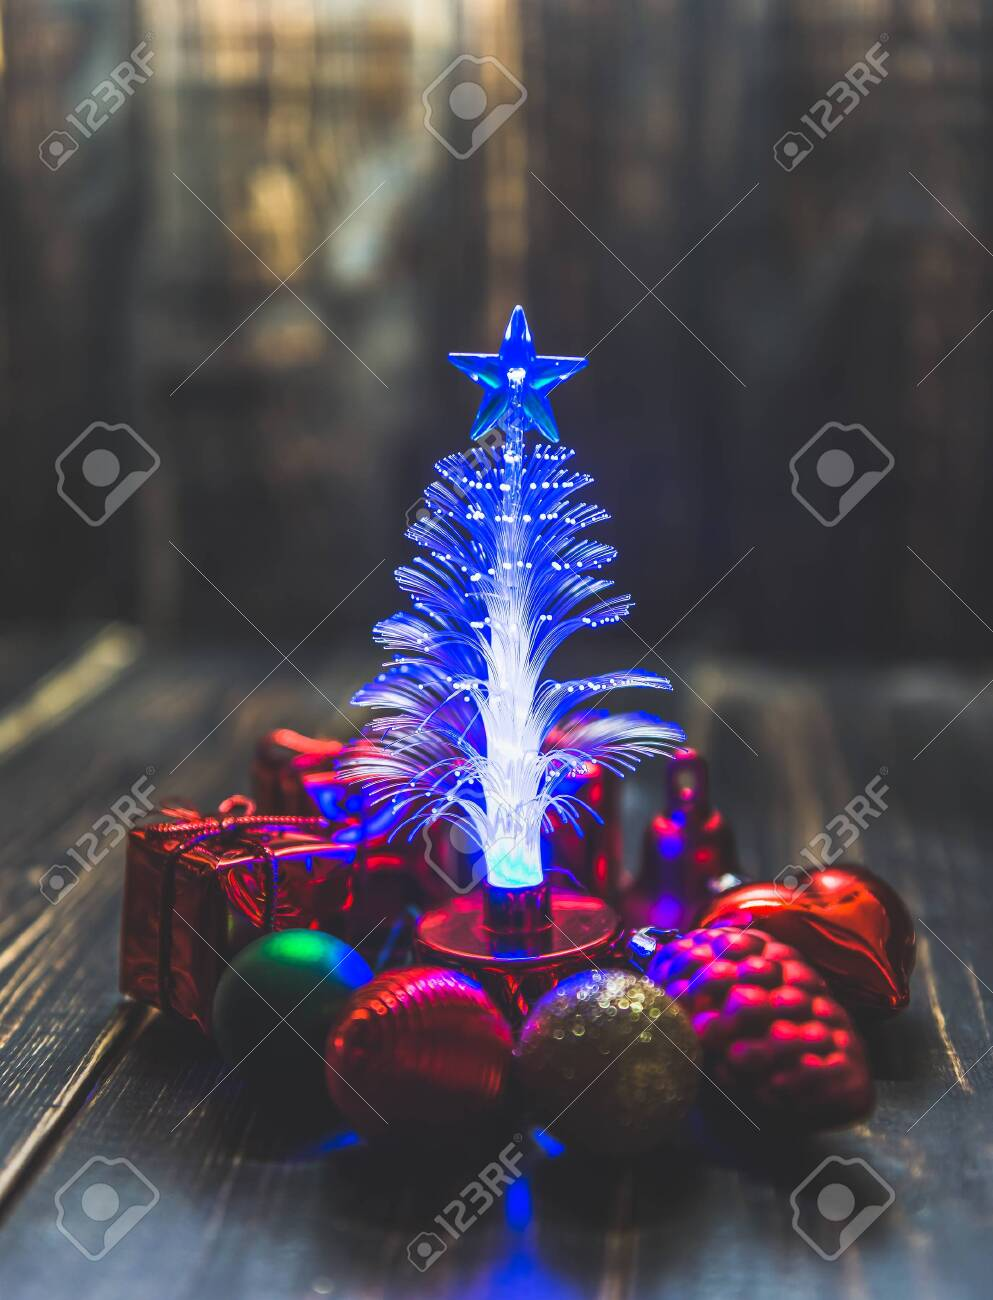 Small Christmas Tree Led Lighting Around With Small Christmas Stock Photo Picture And Royalty Free Image Image 147275545